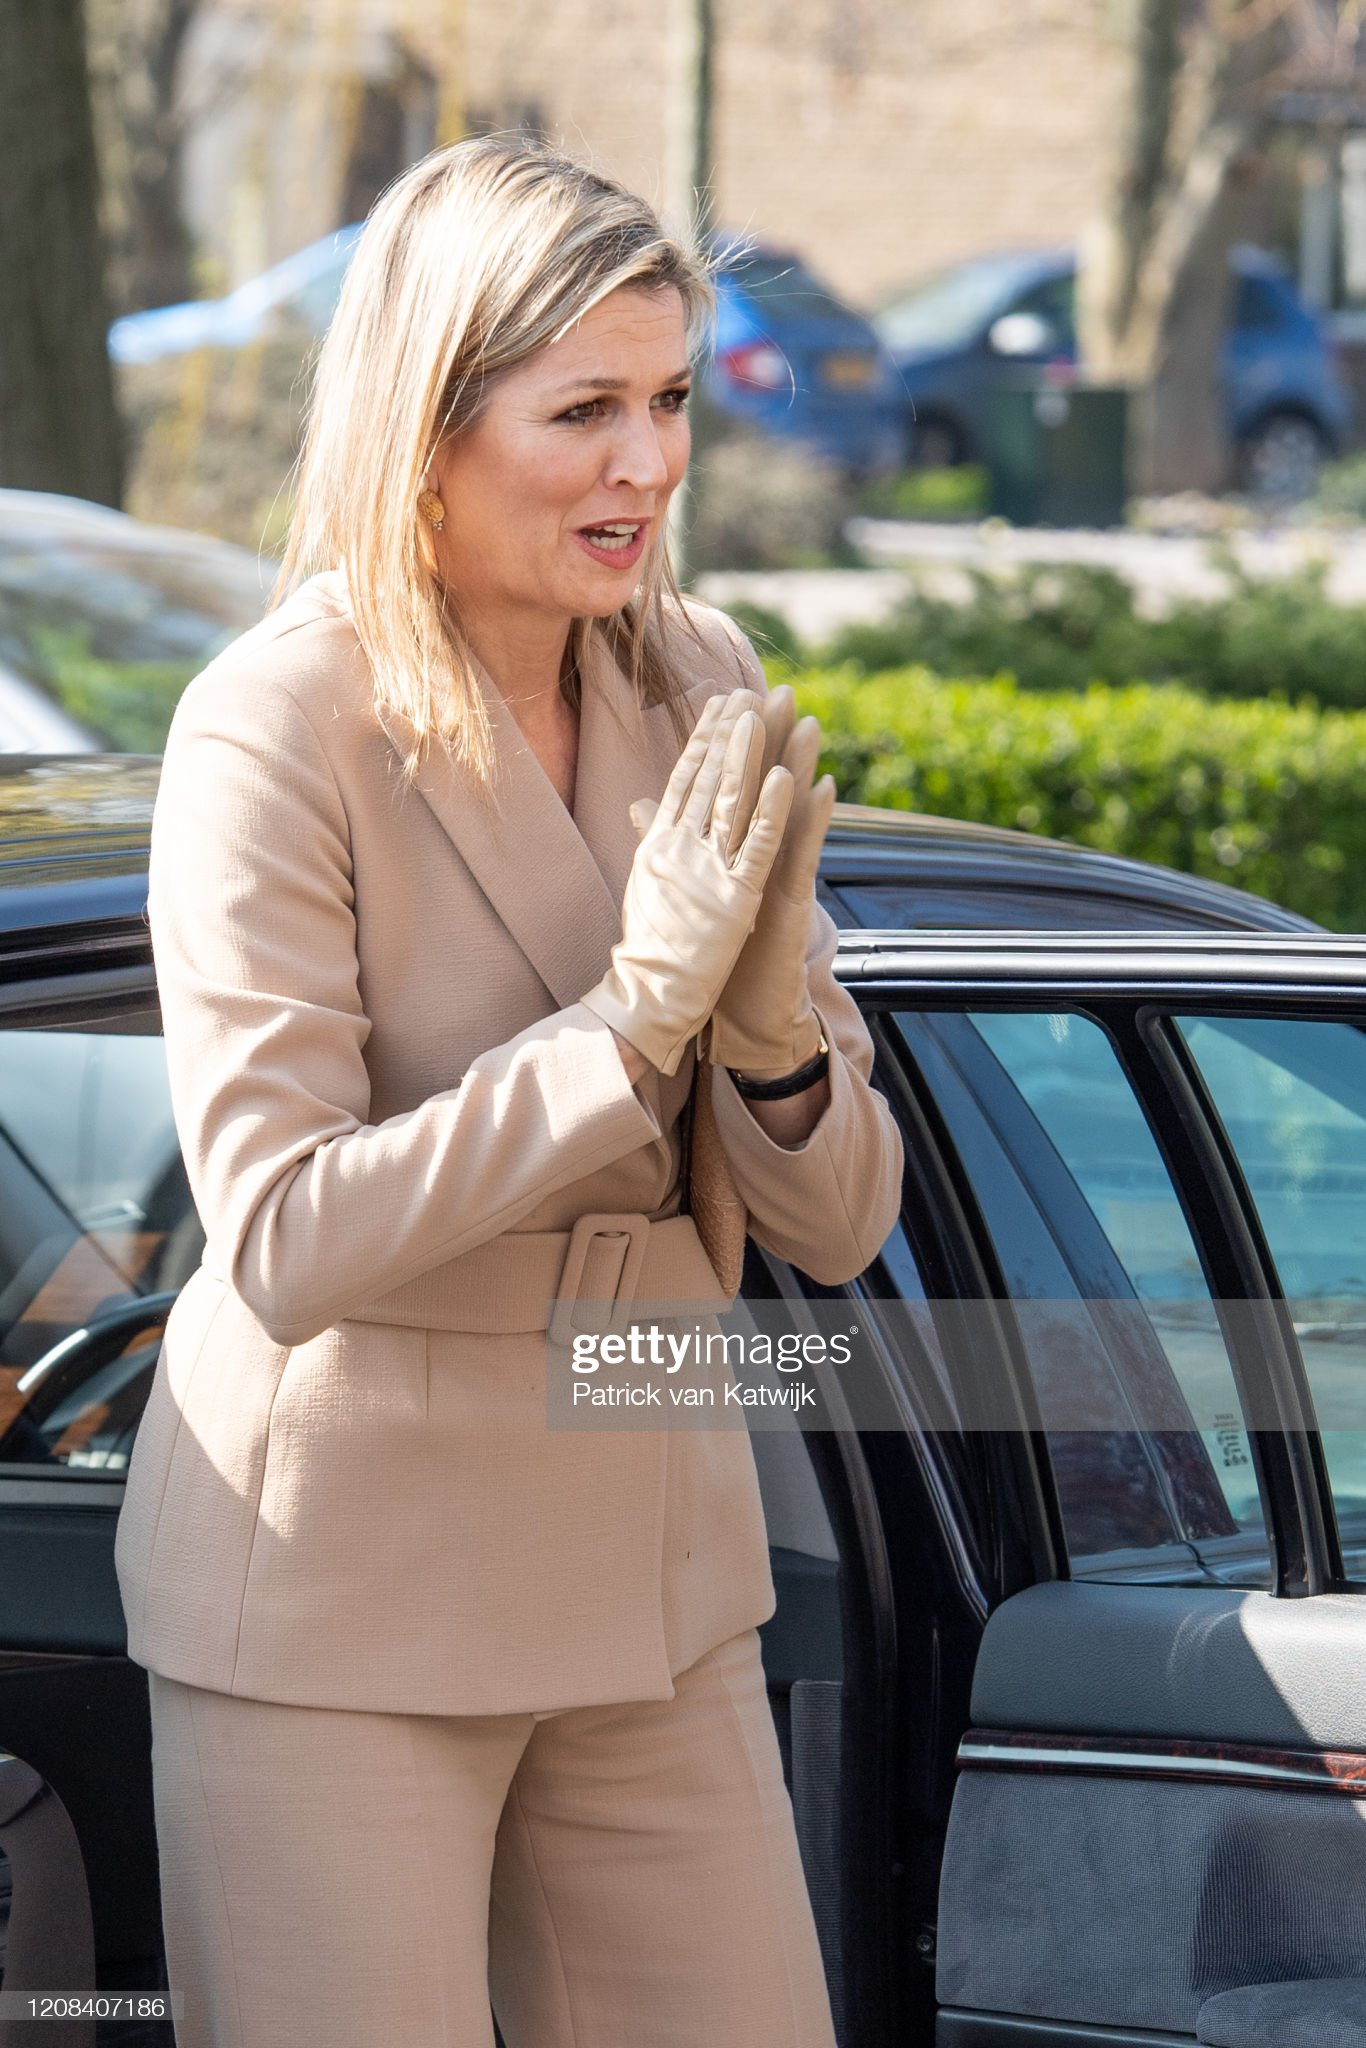 https://media.gettyimages.com/photos/queen-maxima-of-the-netherlands-visits-zuidbaak-floriculture-company-picture-id1208407186?s=2048x2048